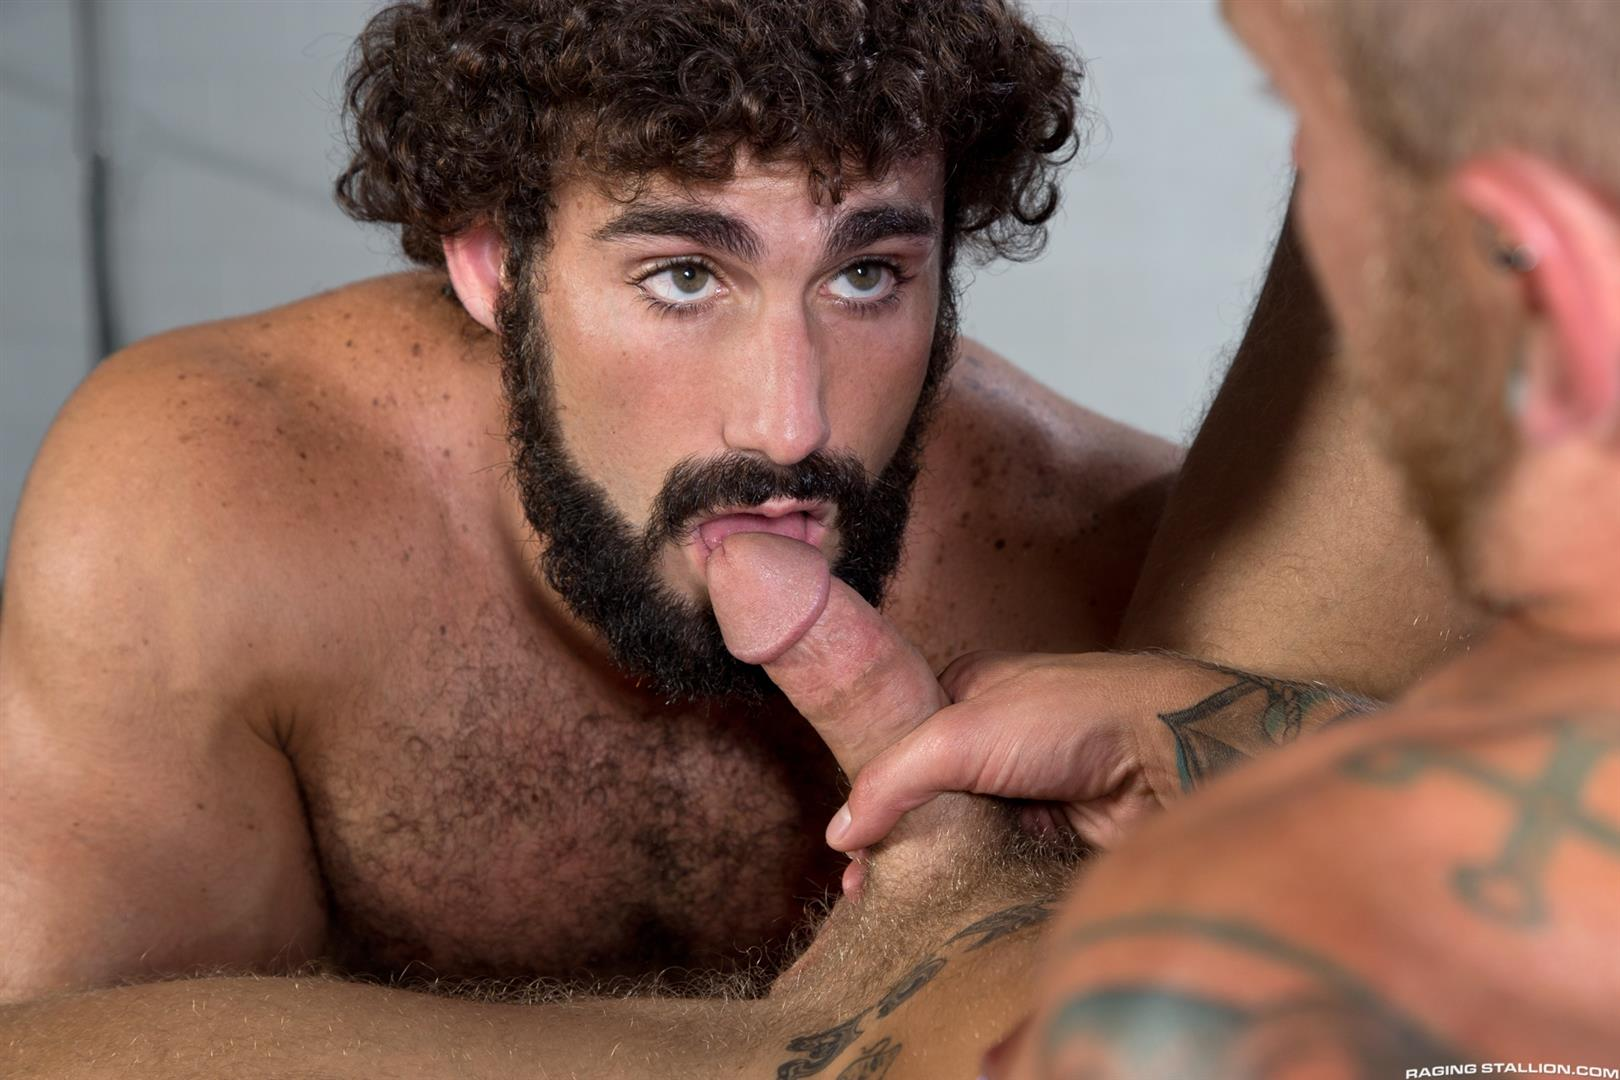 Raging Stallion Jaxon Colt and Jaxton Wheeler Hairy Muscle Hunk Fucking A Tight Ass Amateur Gay Porn 05 Hairy Muscle Hunk Jaxton Wheeler Grinding A Tight Ass